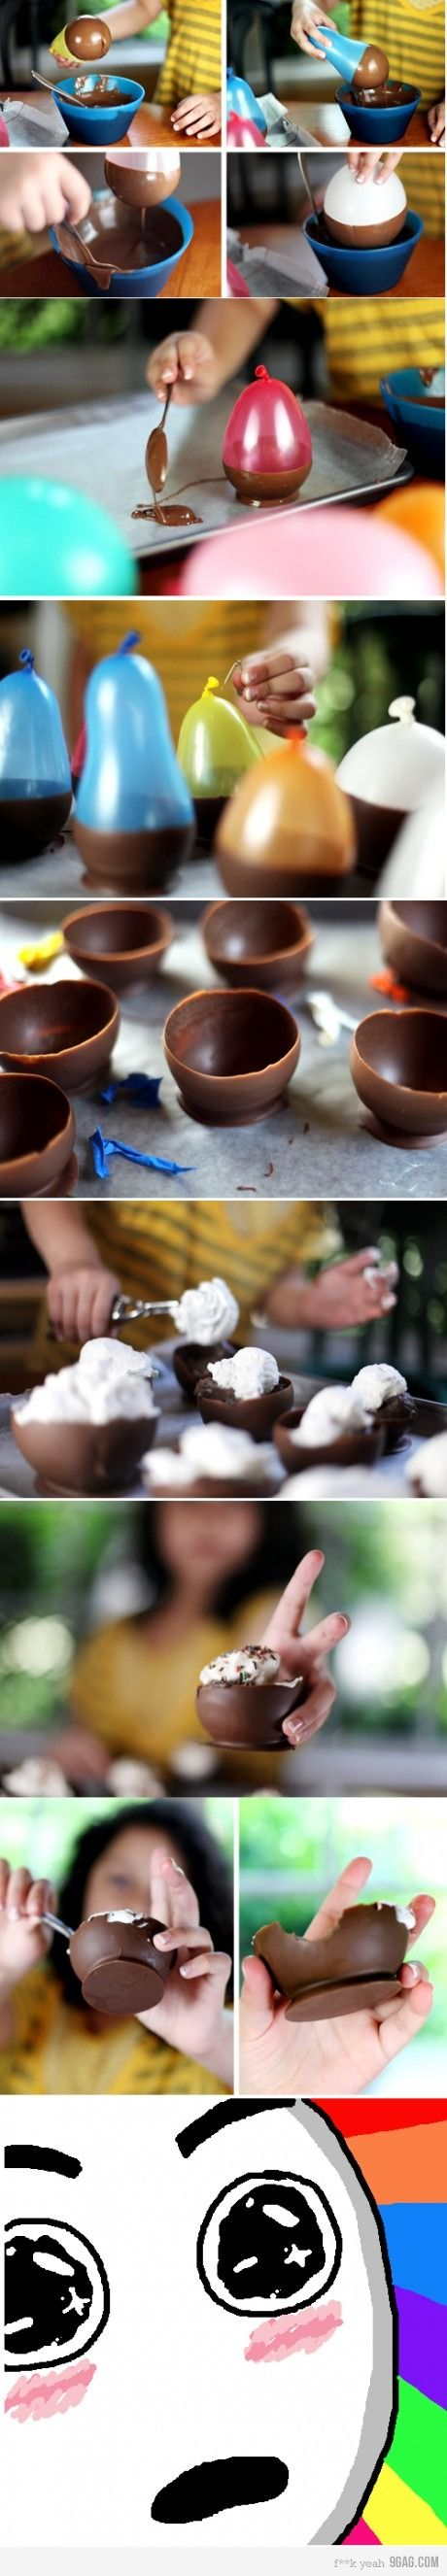 Chocolate cups :)